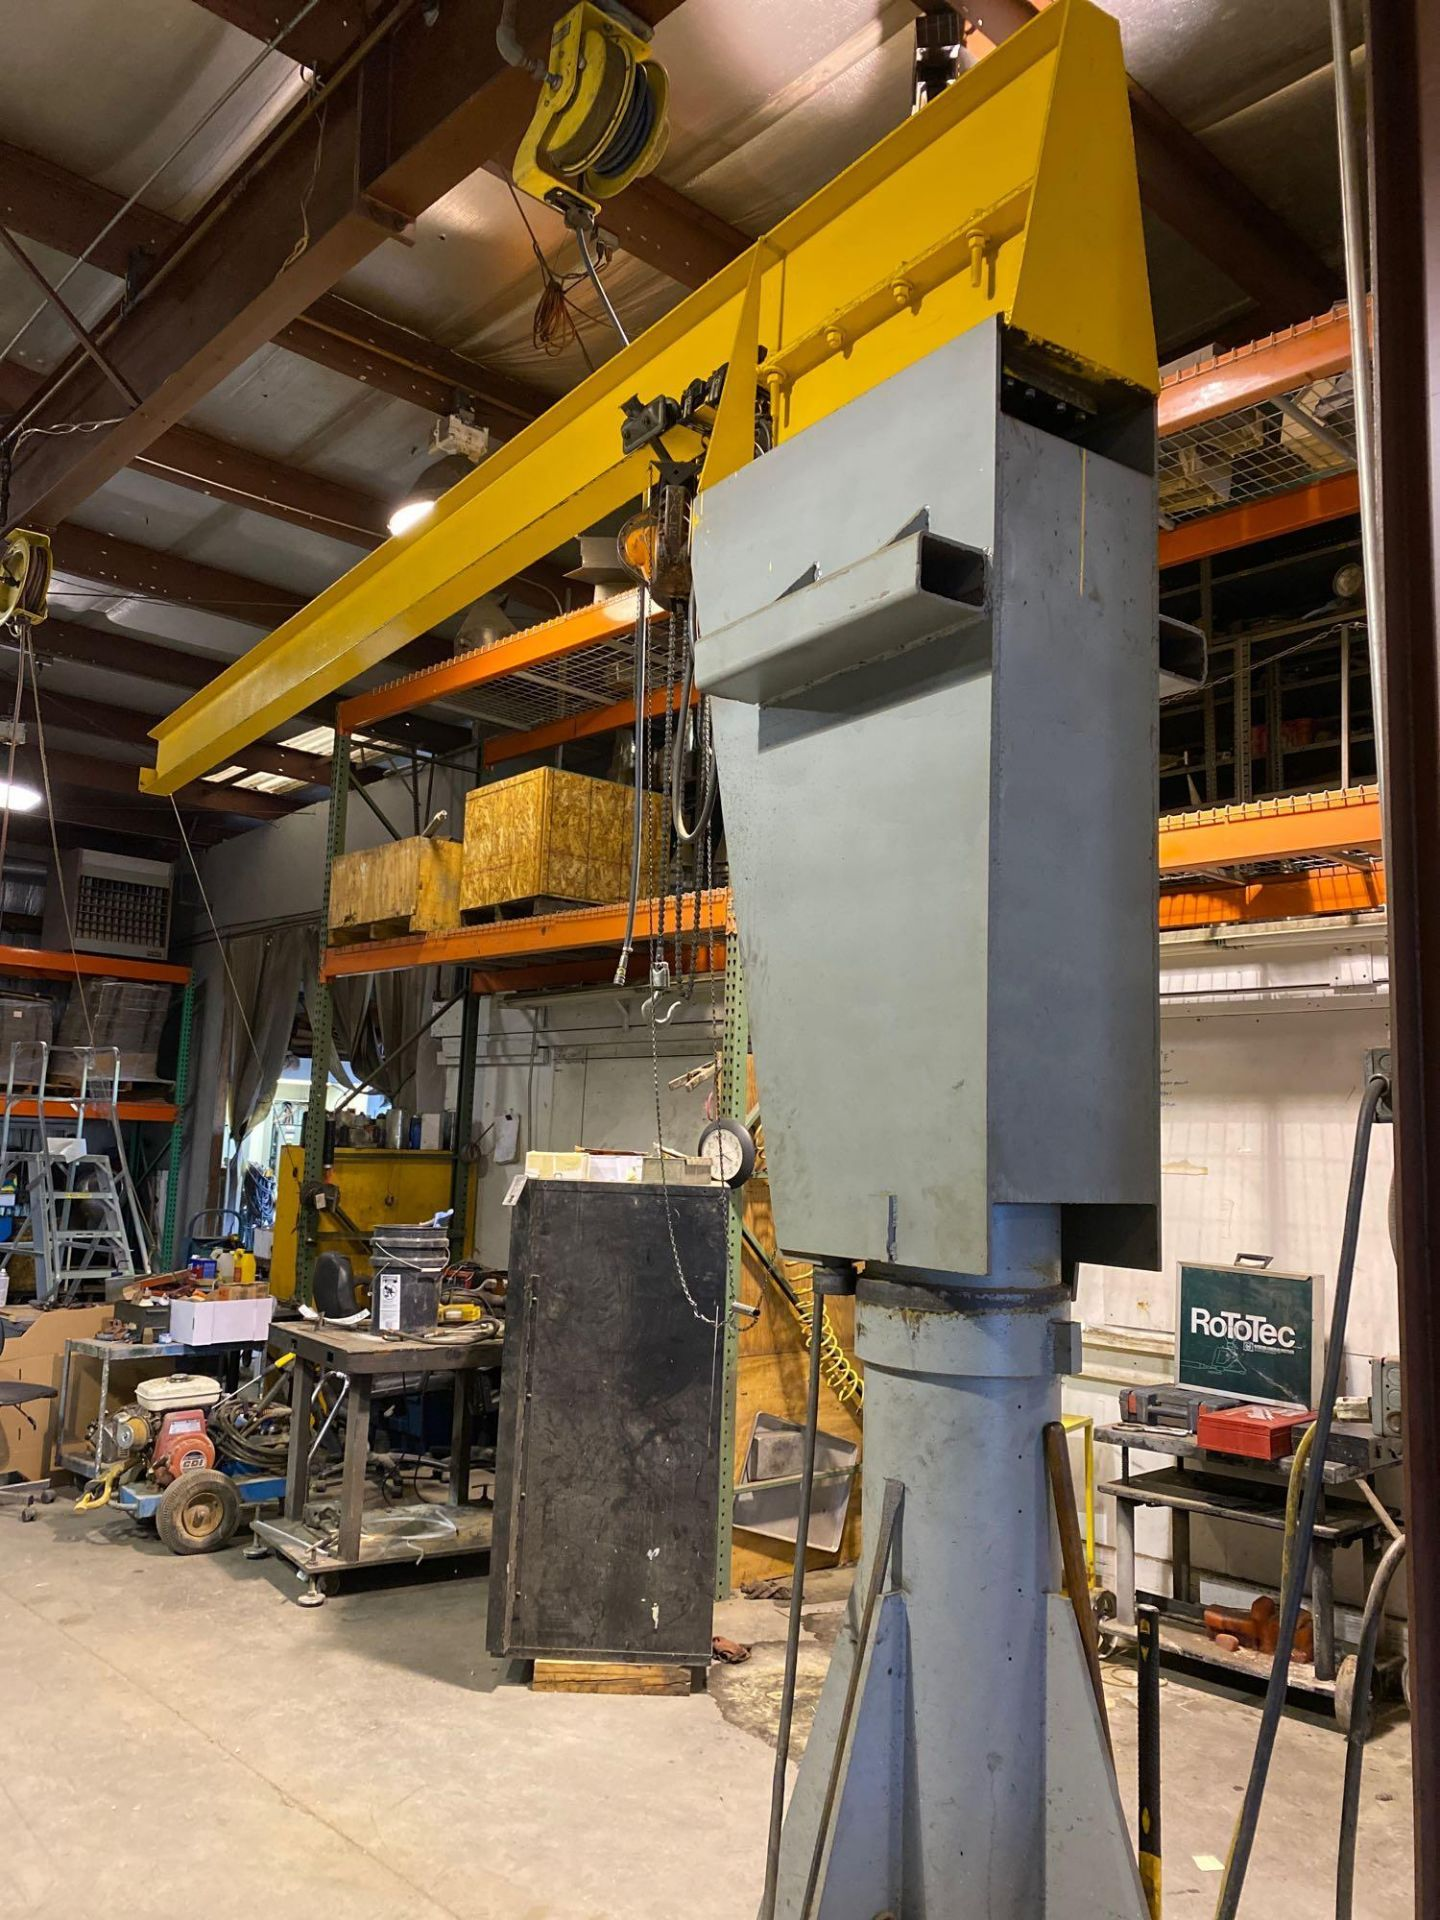 Over Head Jib Crane with Shannon Hoist and Yale Pulley System - Image 5 of 13